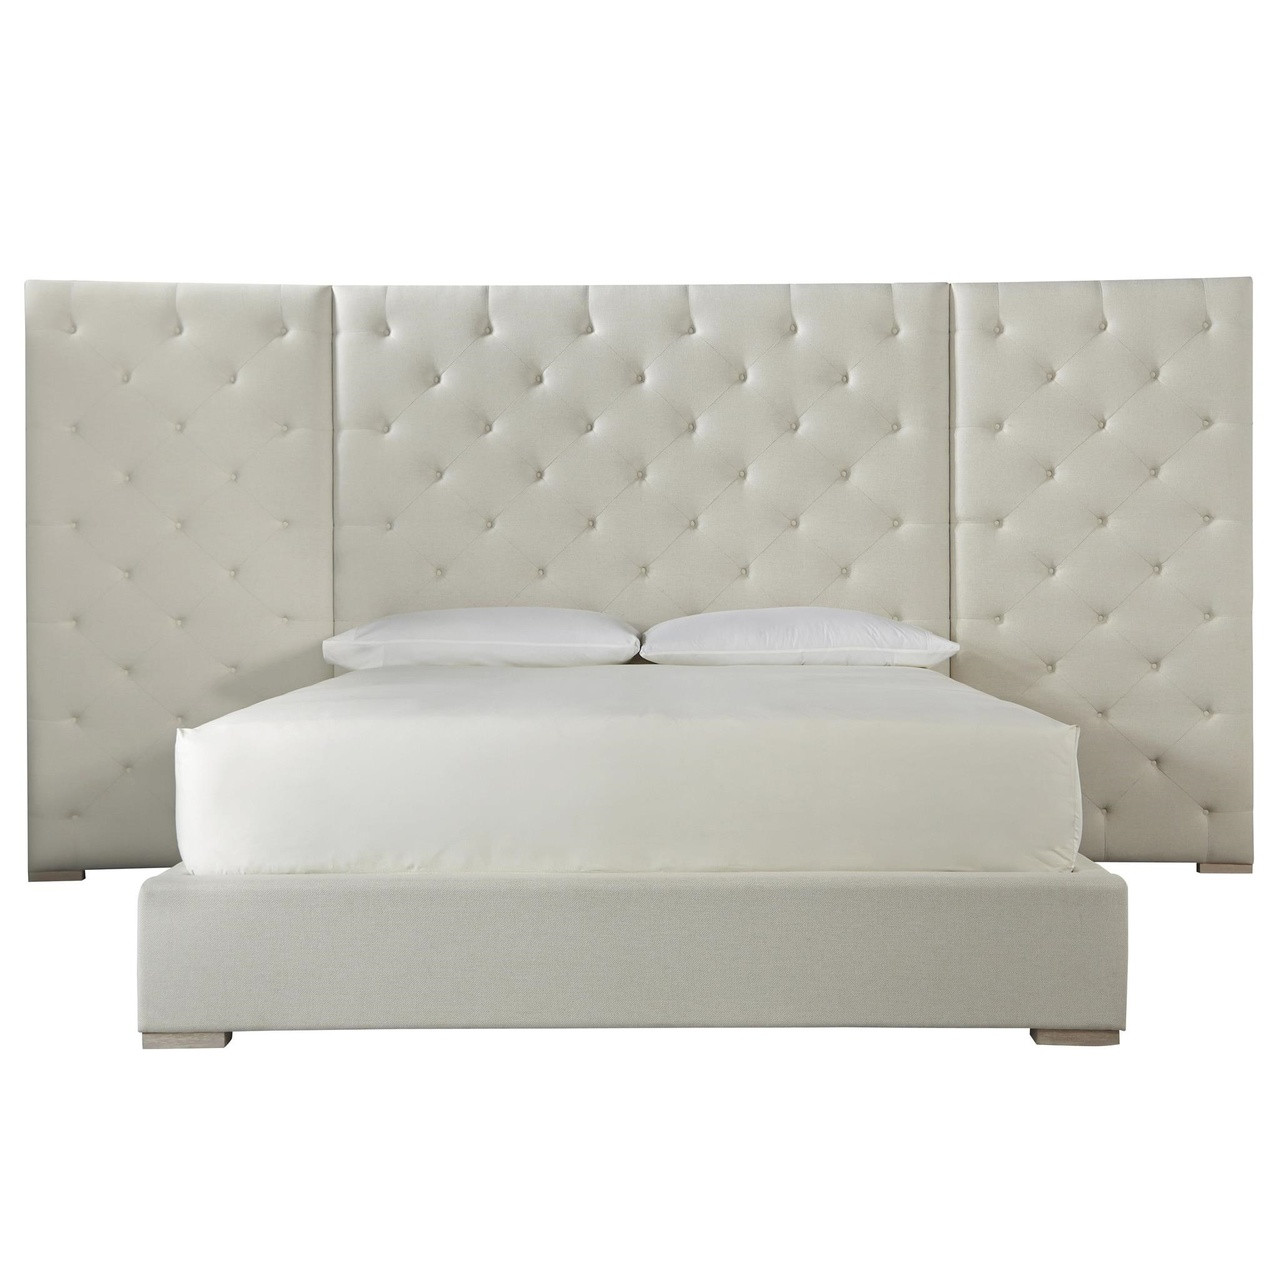 modern boxtufted extended headboard fabric platform bed  california king. modern boxtufted extended headboard fabric platform bed